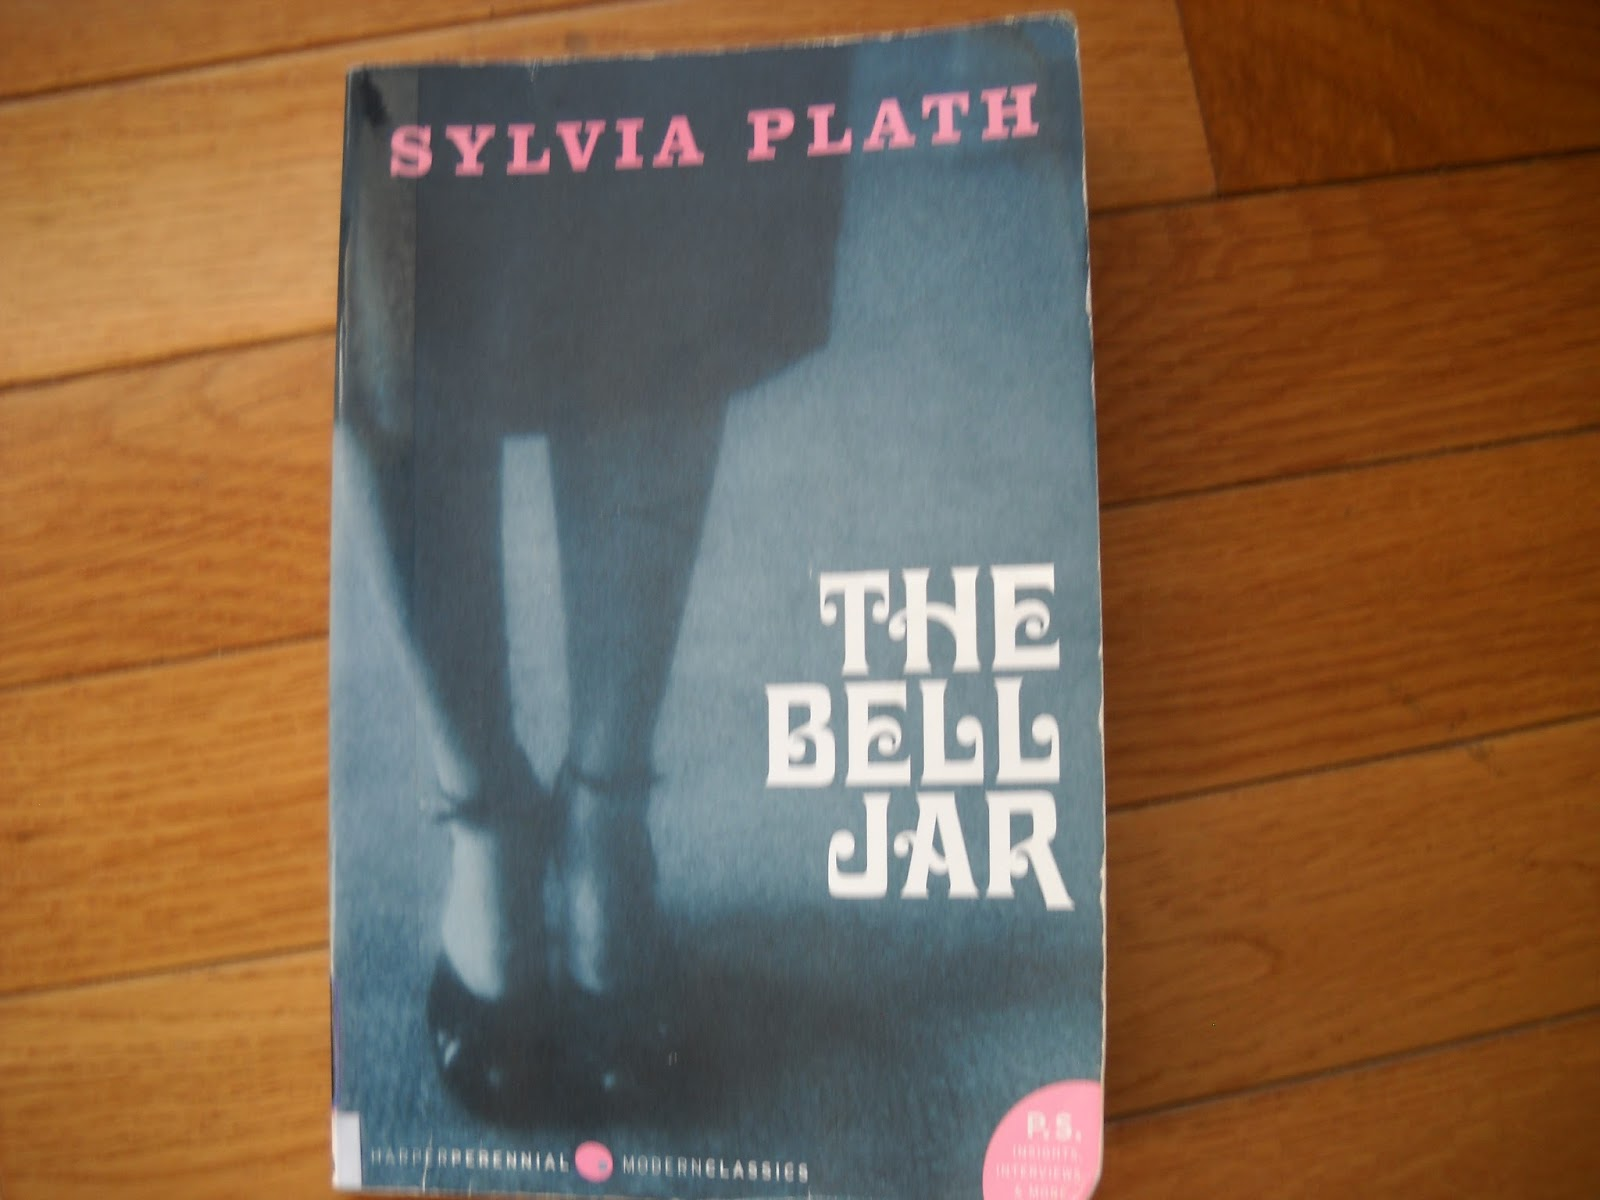 reviewing sylvia plaths the bell jar english literature essay This paper looks at male depiction in sylvia plath's, the bell jar it argues that plath's work is a classic instance of an angry and troubled woman using literature as a means of getting back at the men in her life - most notably her husband and her father - who have let her down.